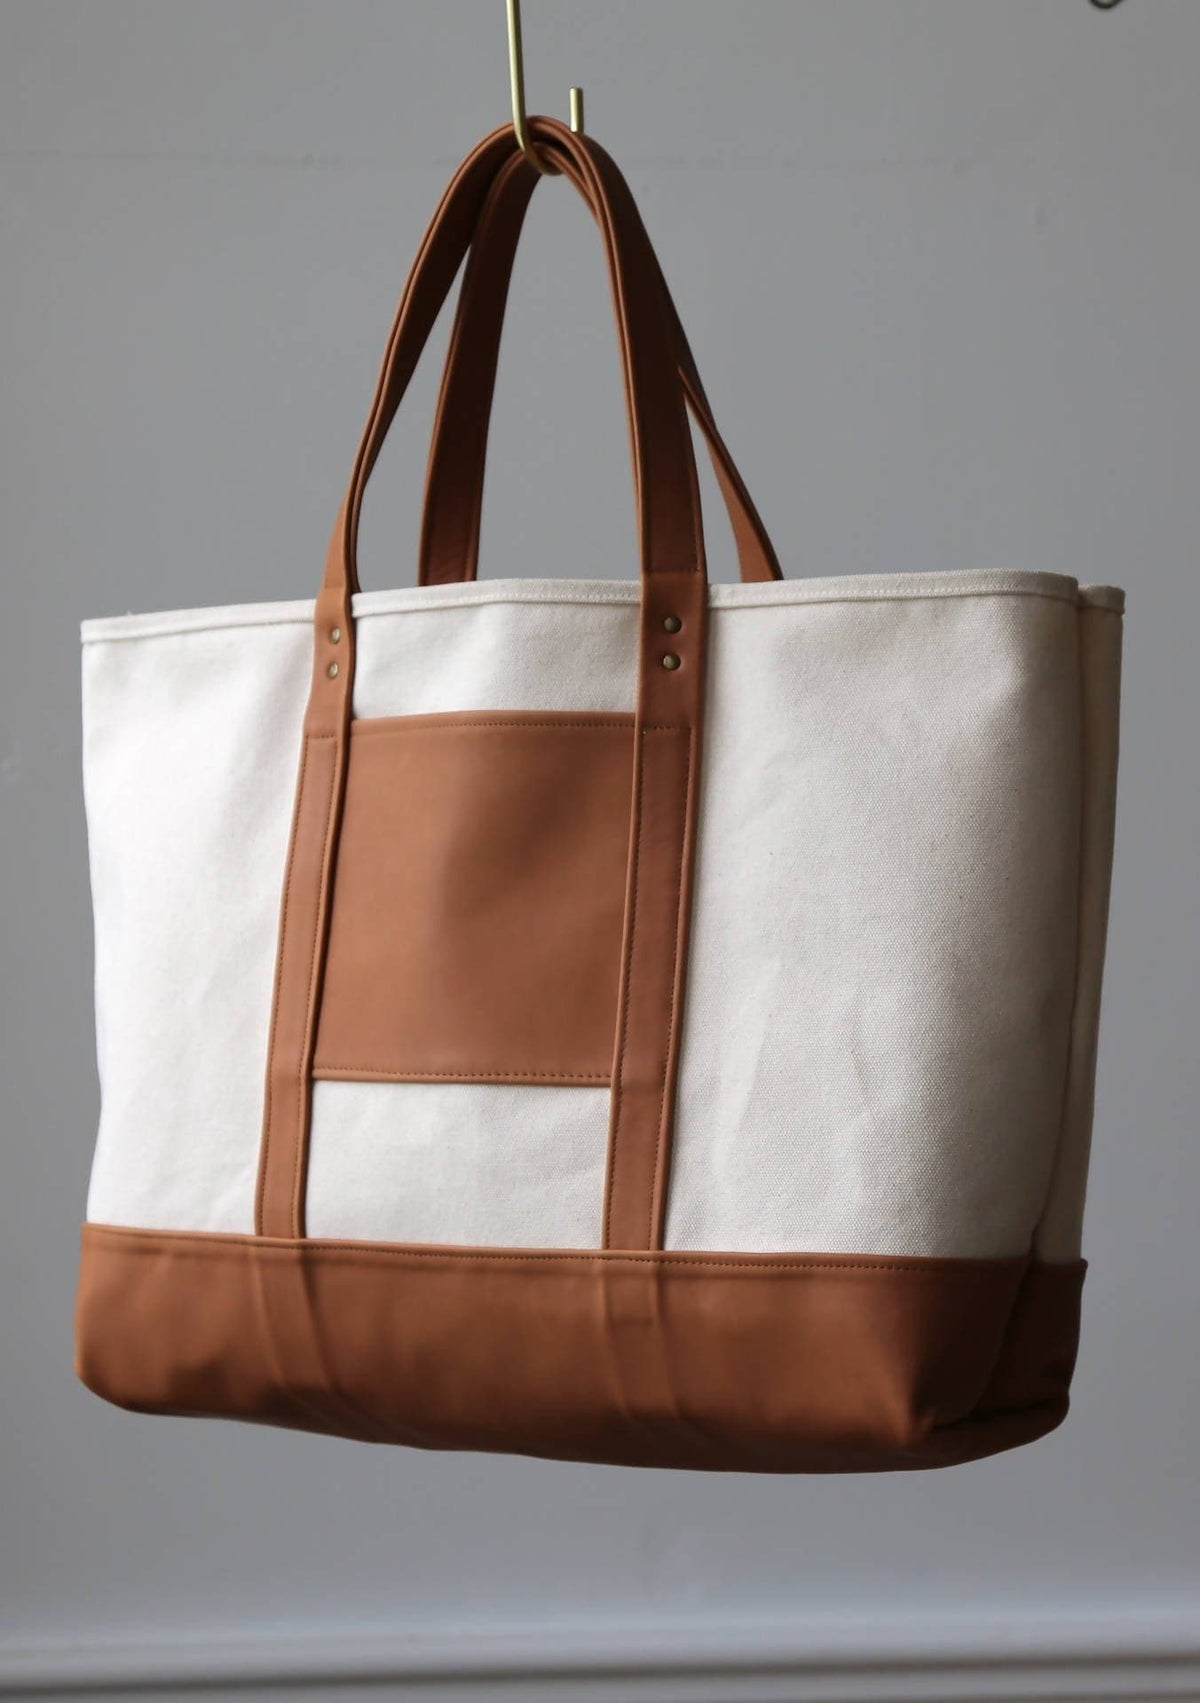 Tote in Sienna